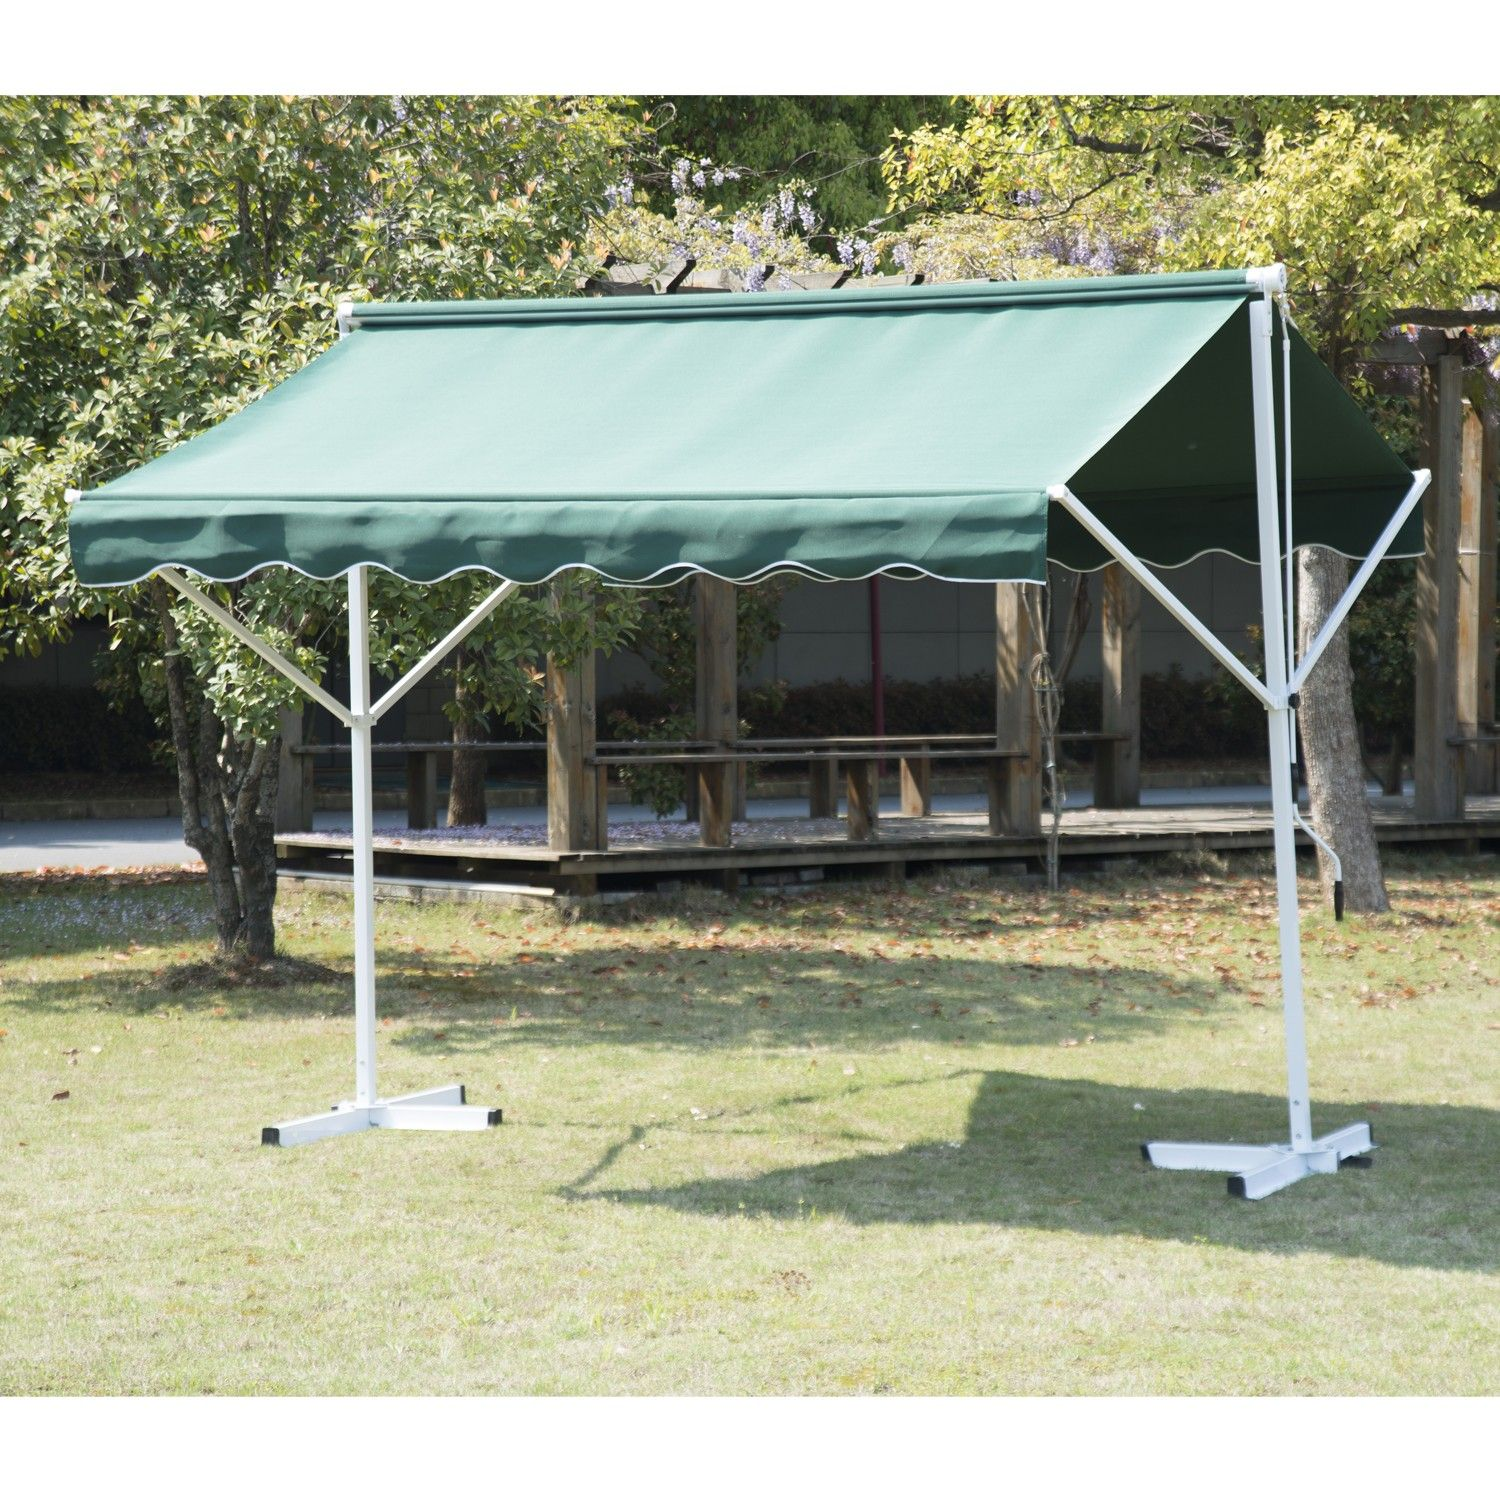 wedding sun gazebo canopy awning party outdoor dci patio tent garden shelter living outsunny